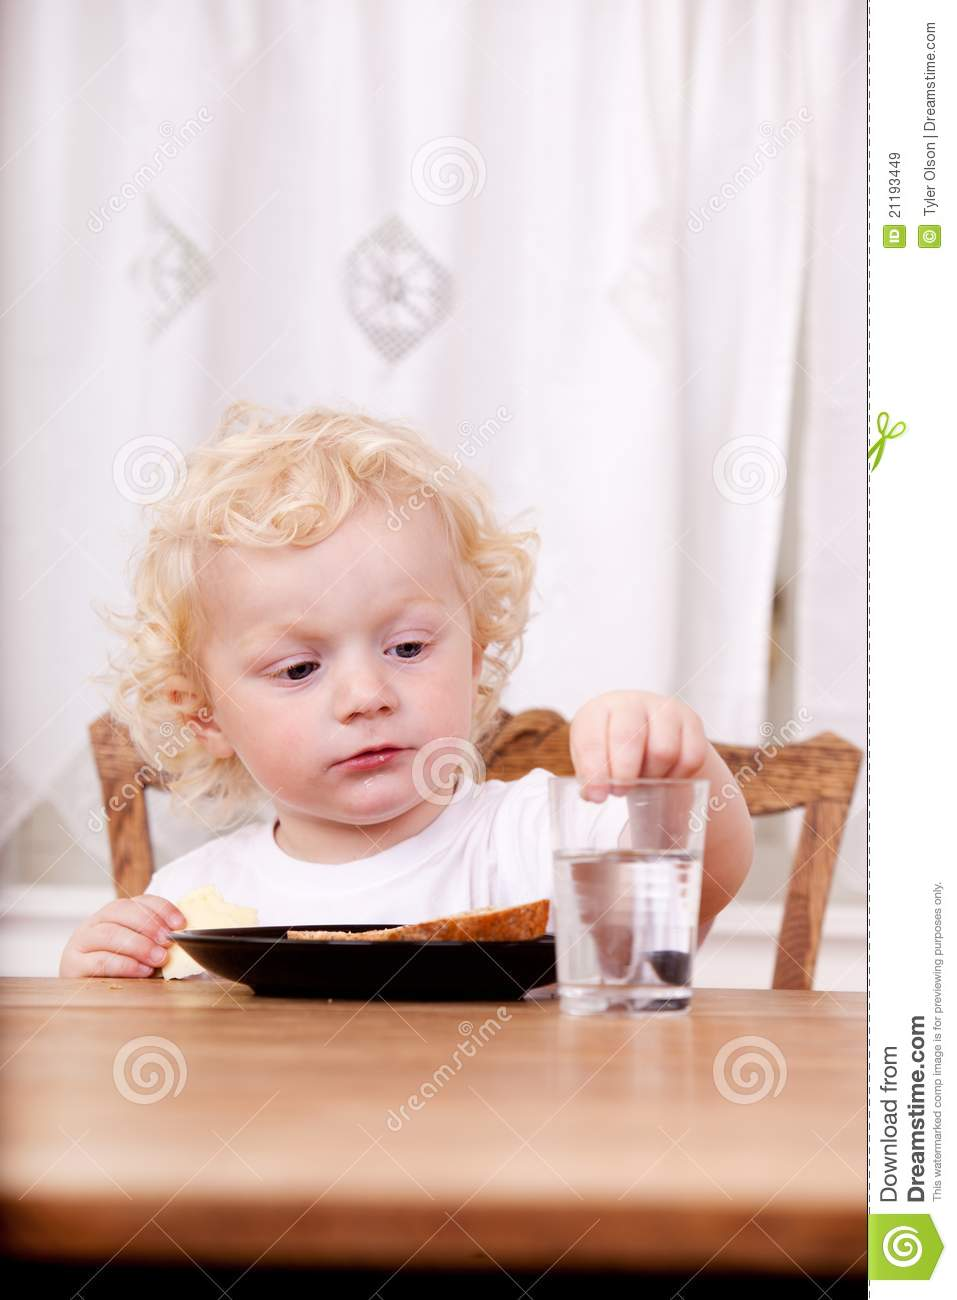 Child Sitting at Table